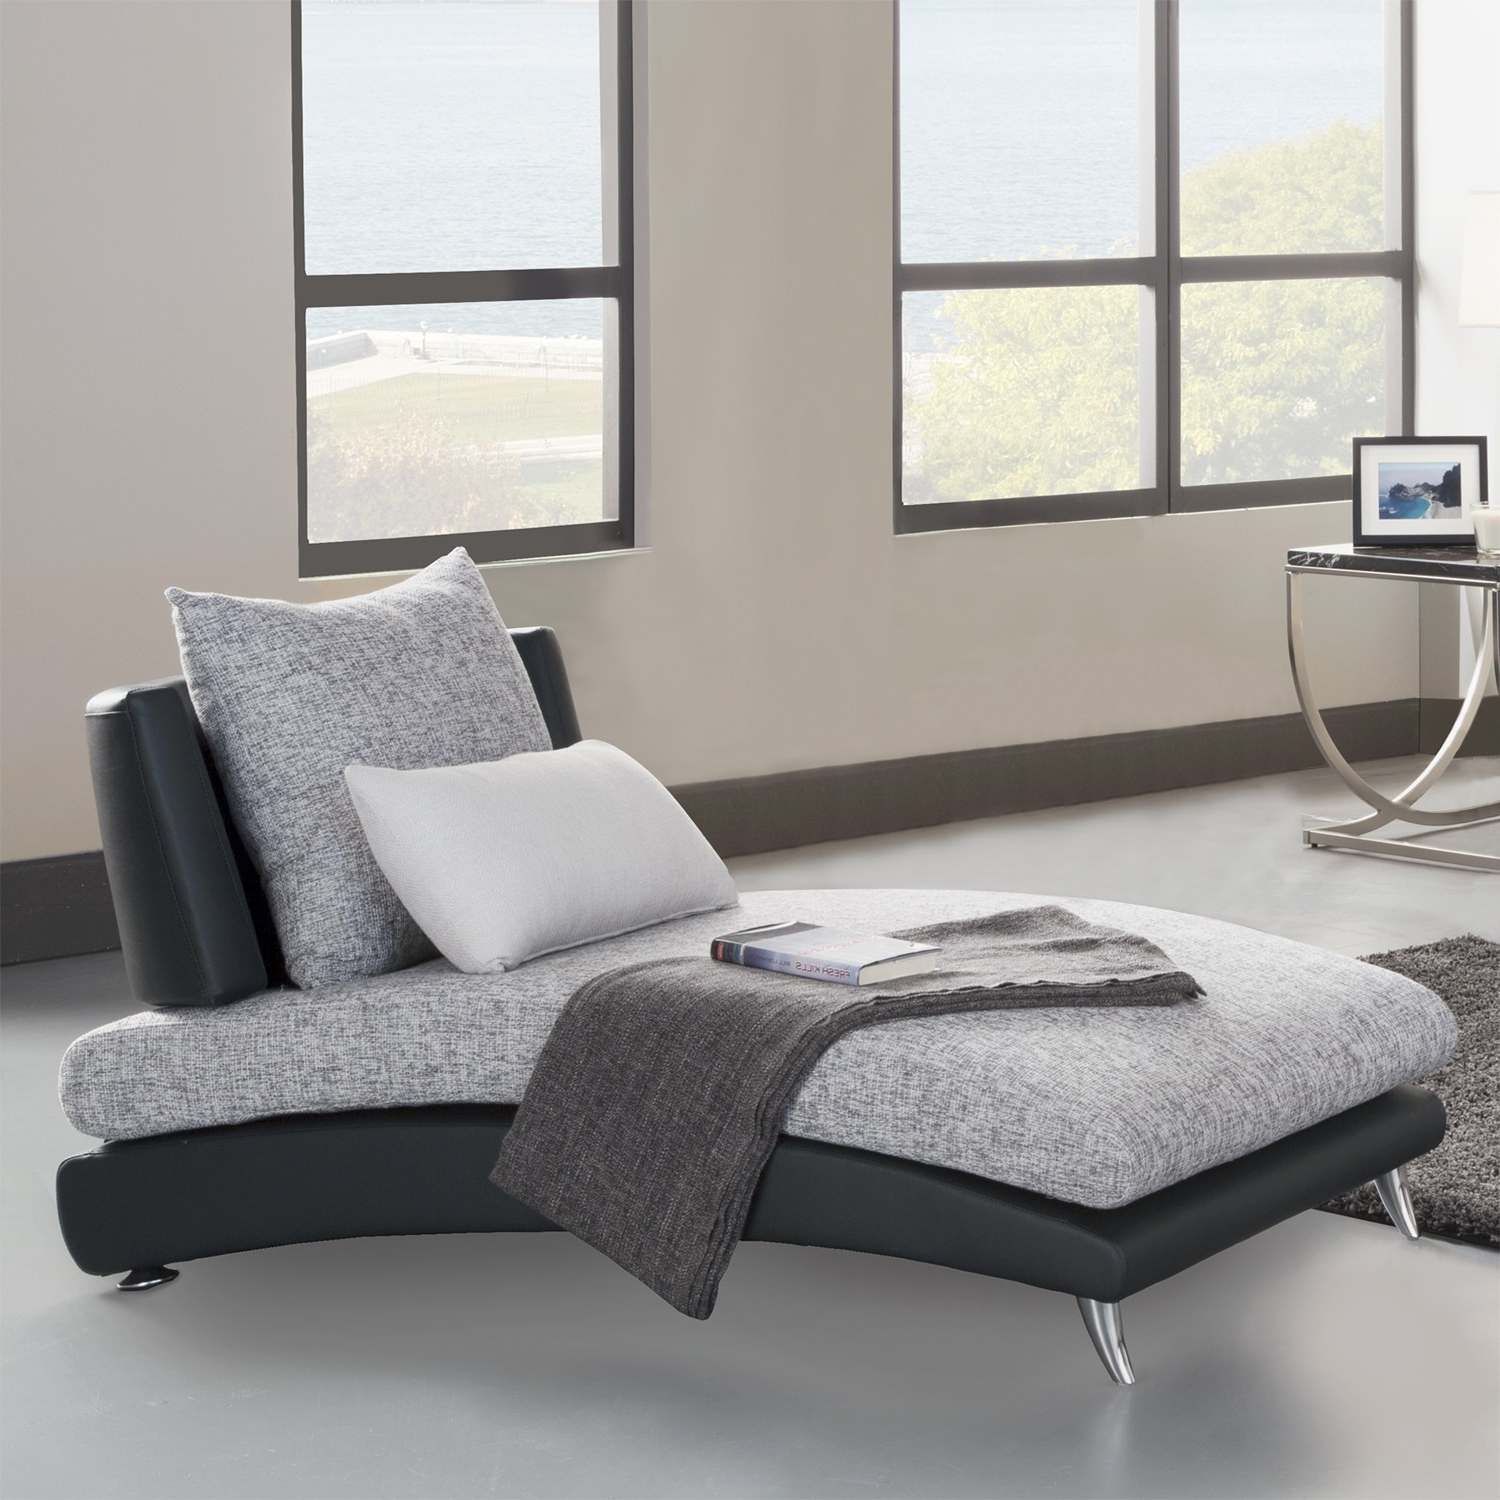 Bedroom Lounge Chairs 2018 Popular Bedroom Chaise Lounge Chairs